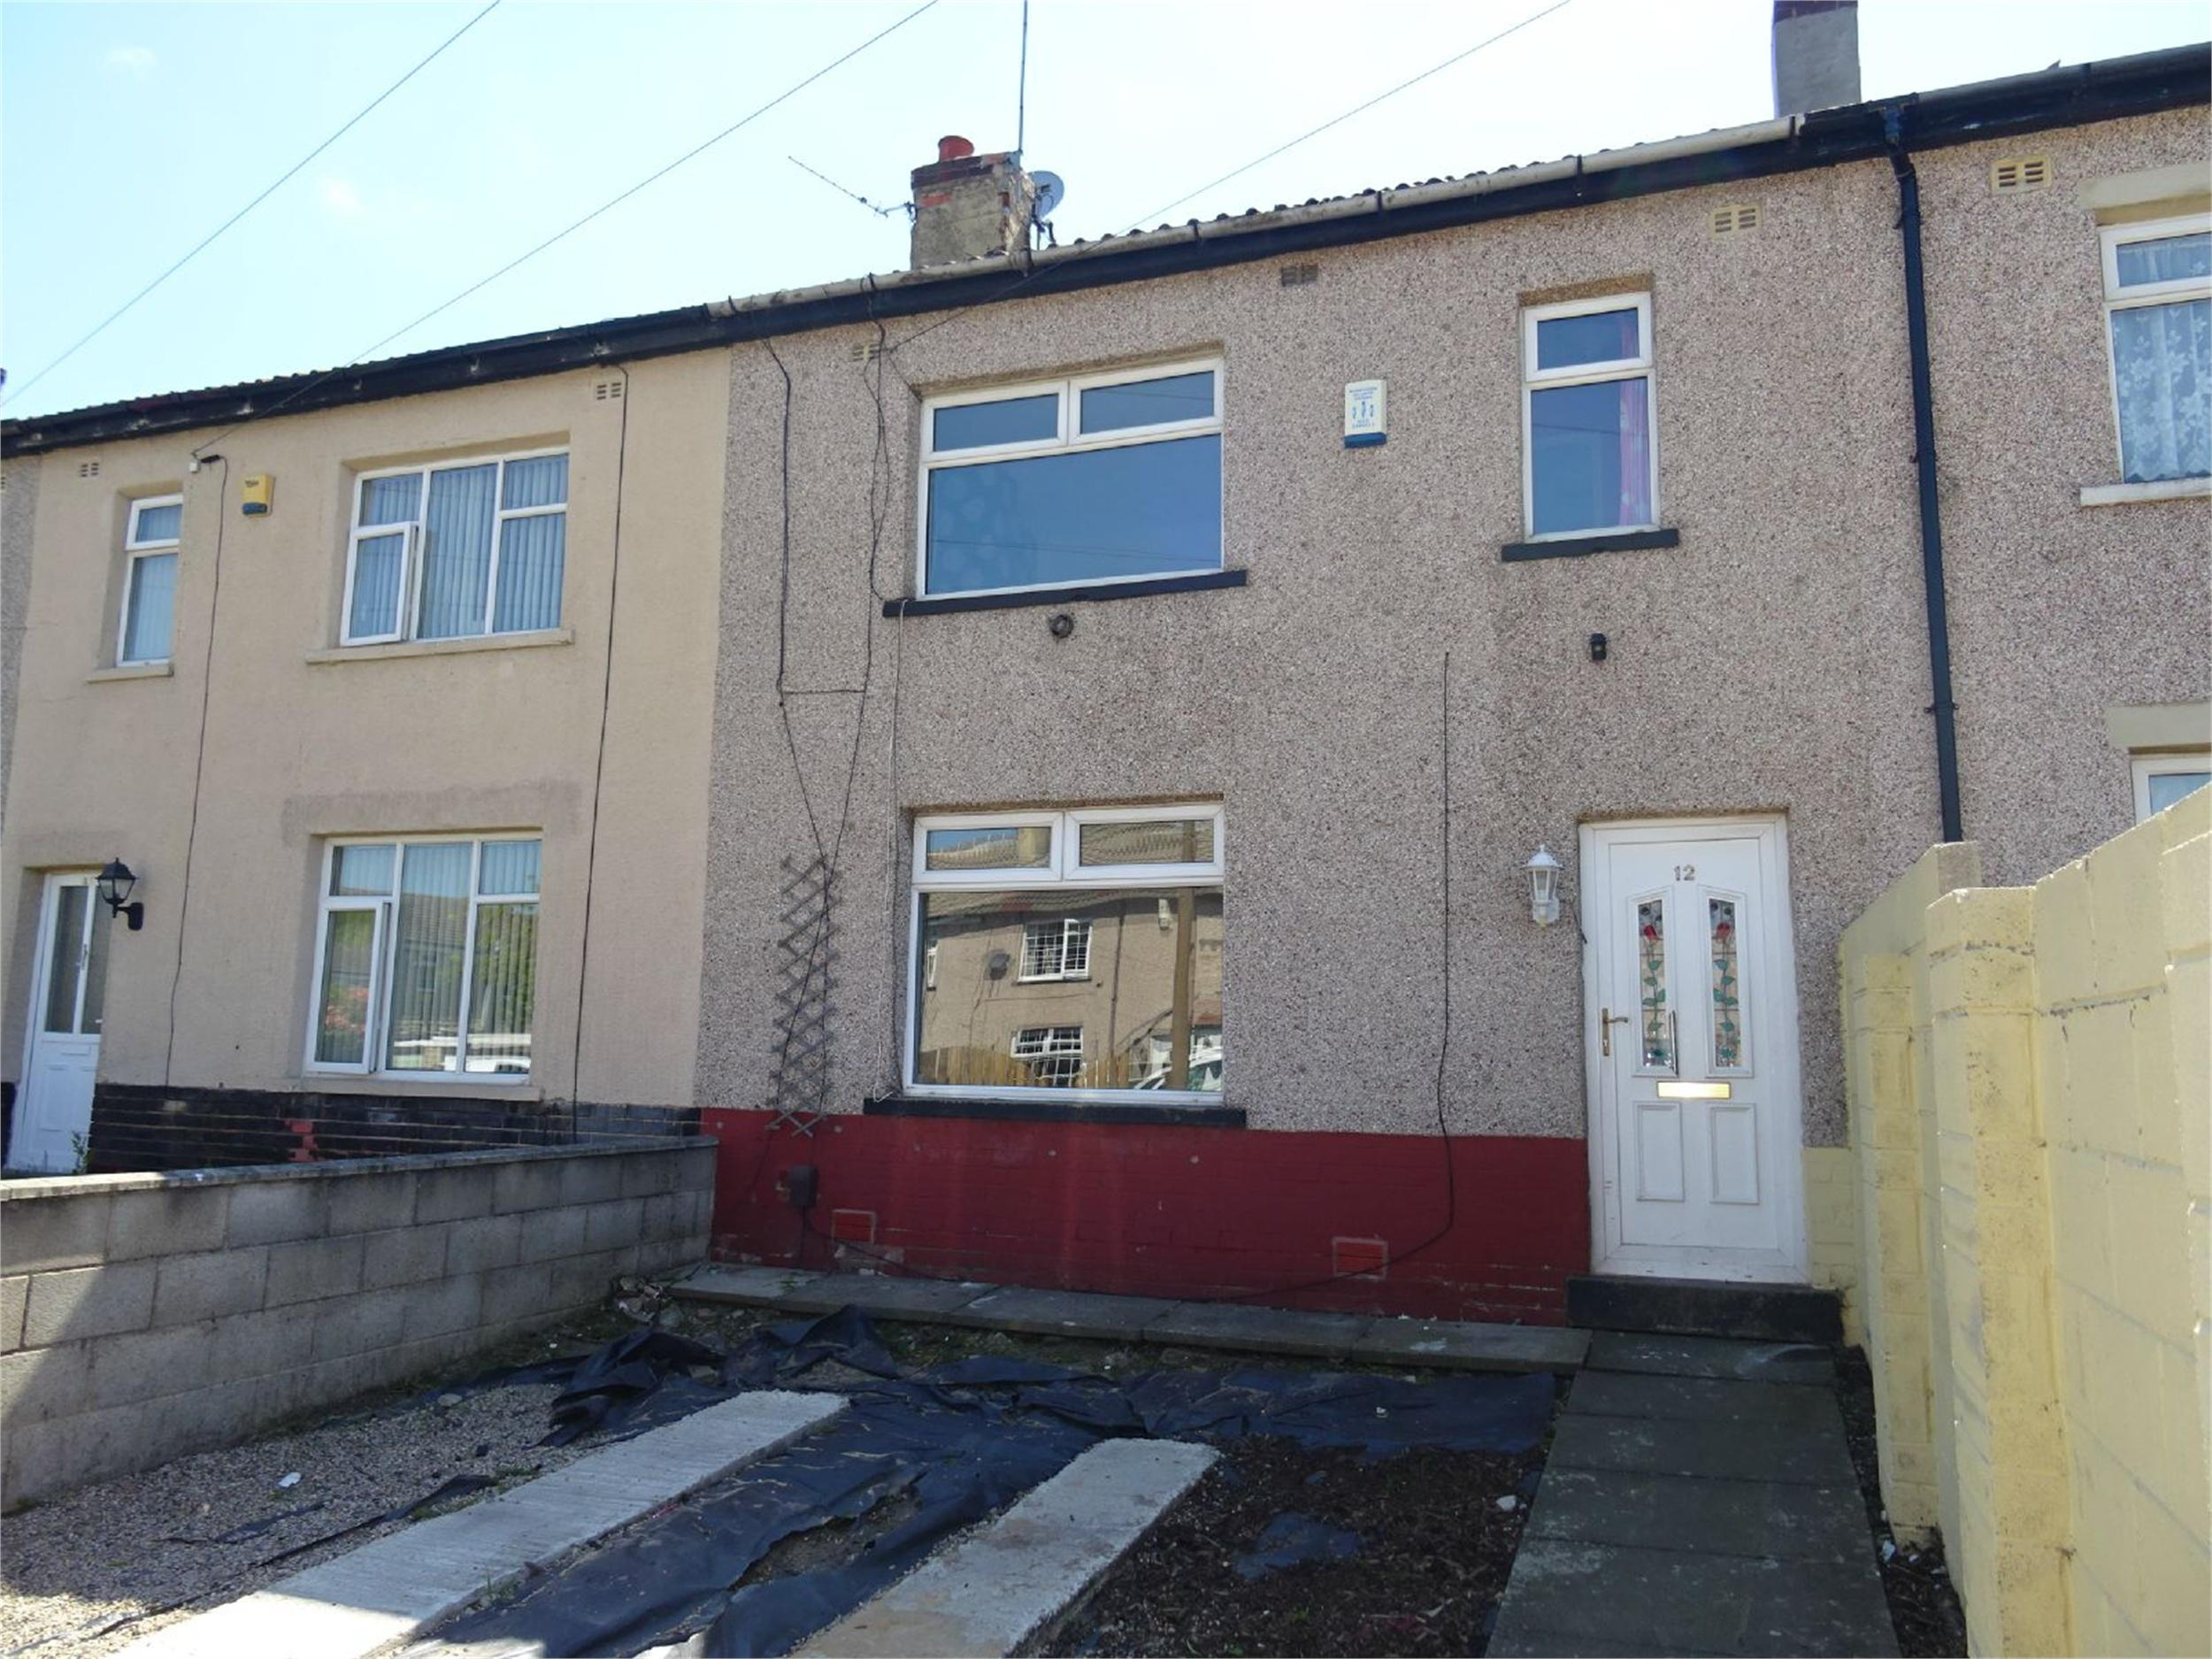 Yorkshire Terrace: Whitegates Bradford 3 Bedroom Town House For Sale In